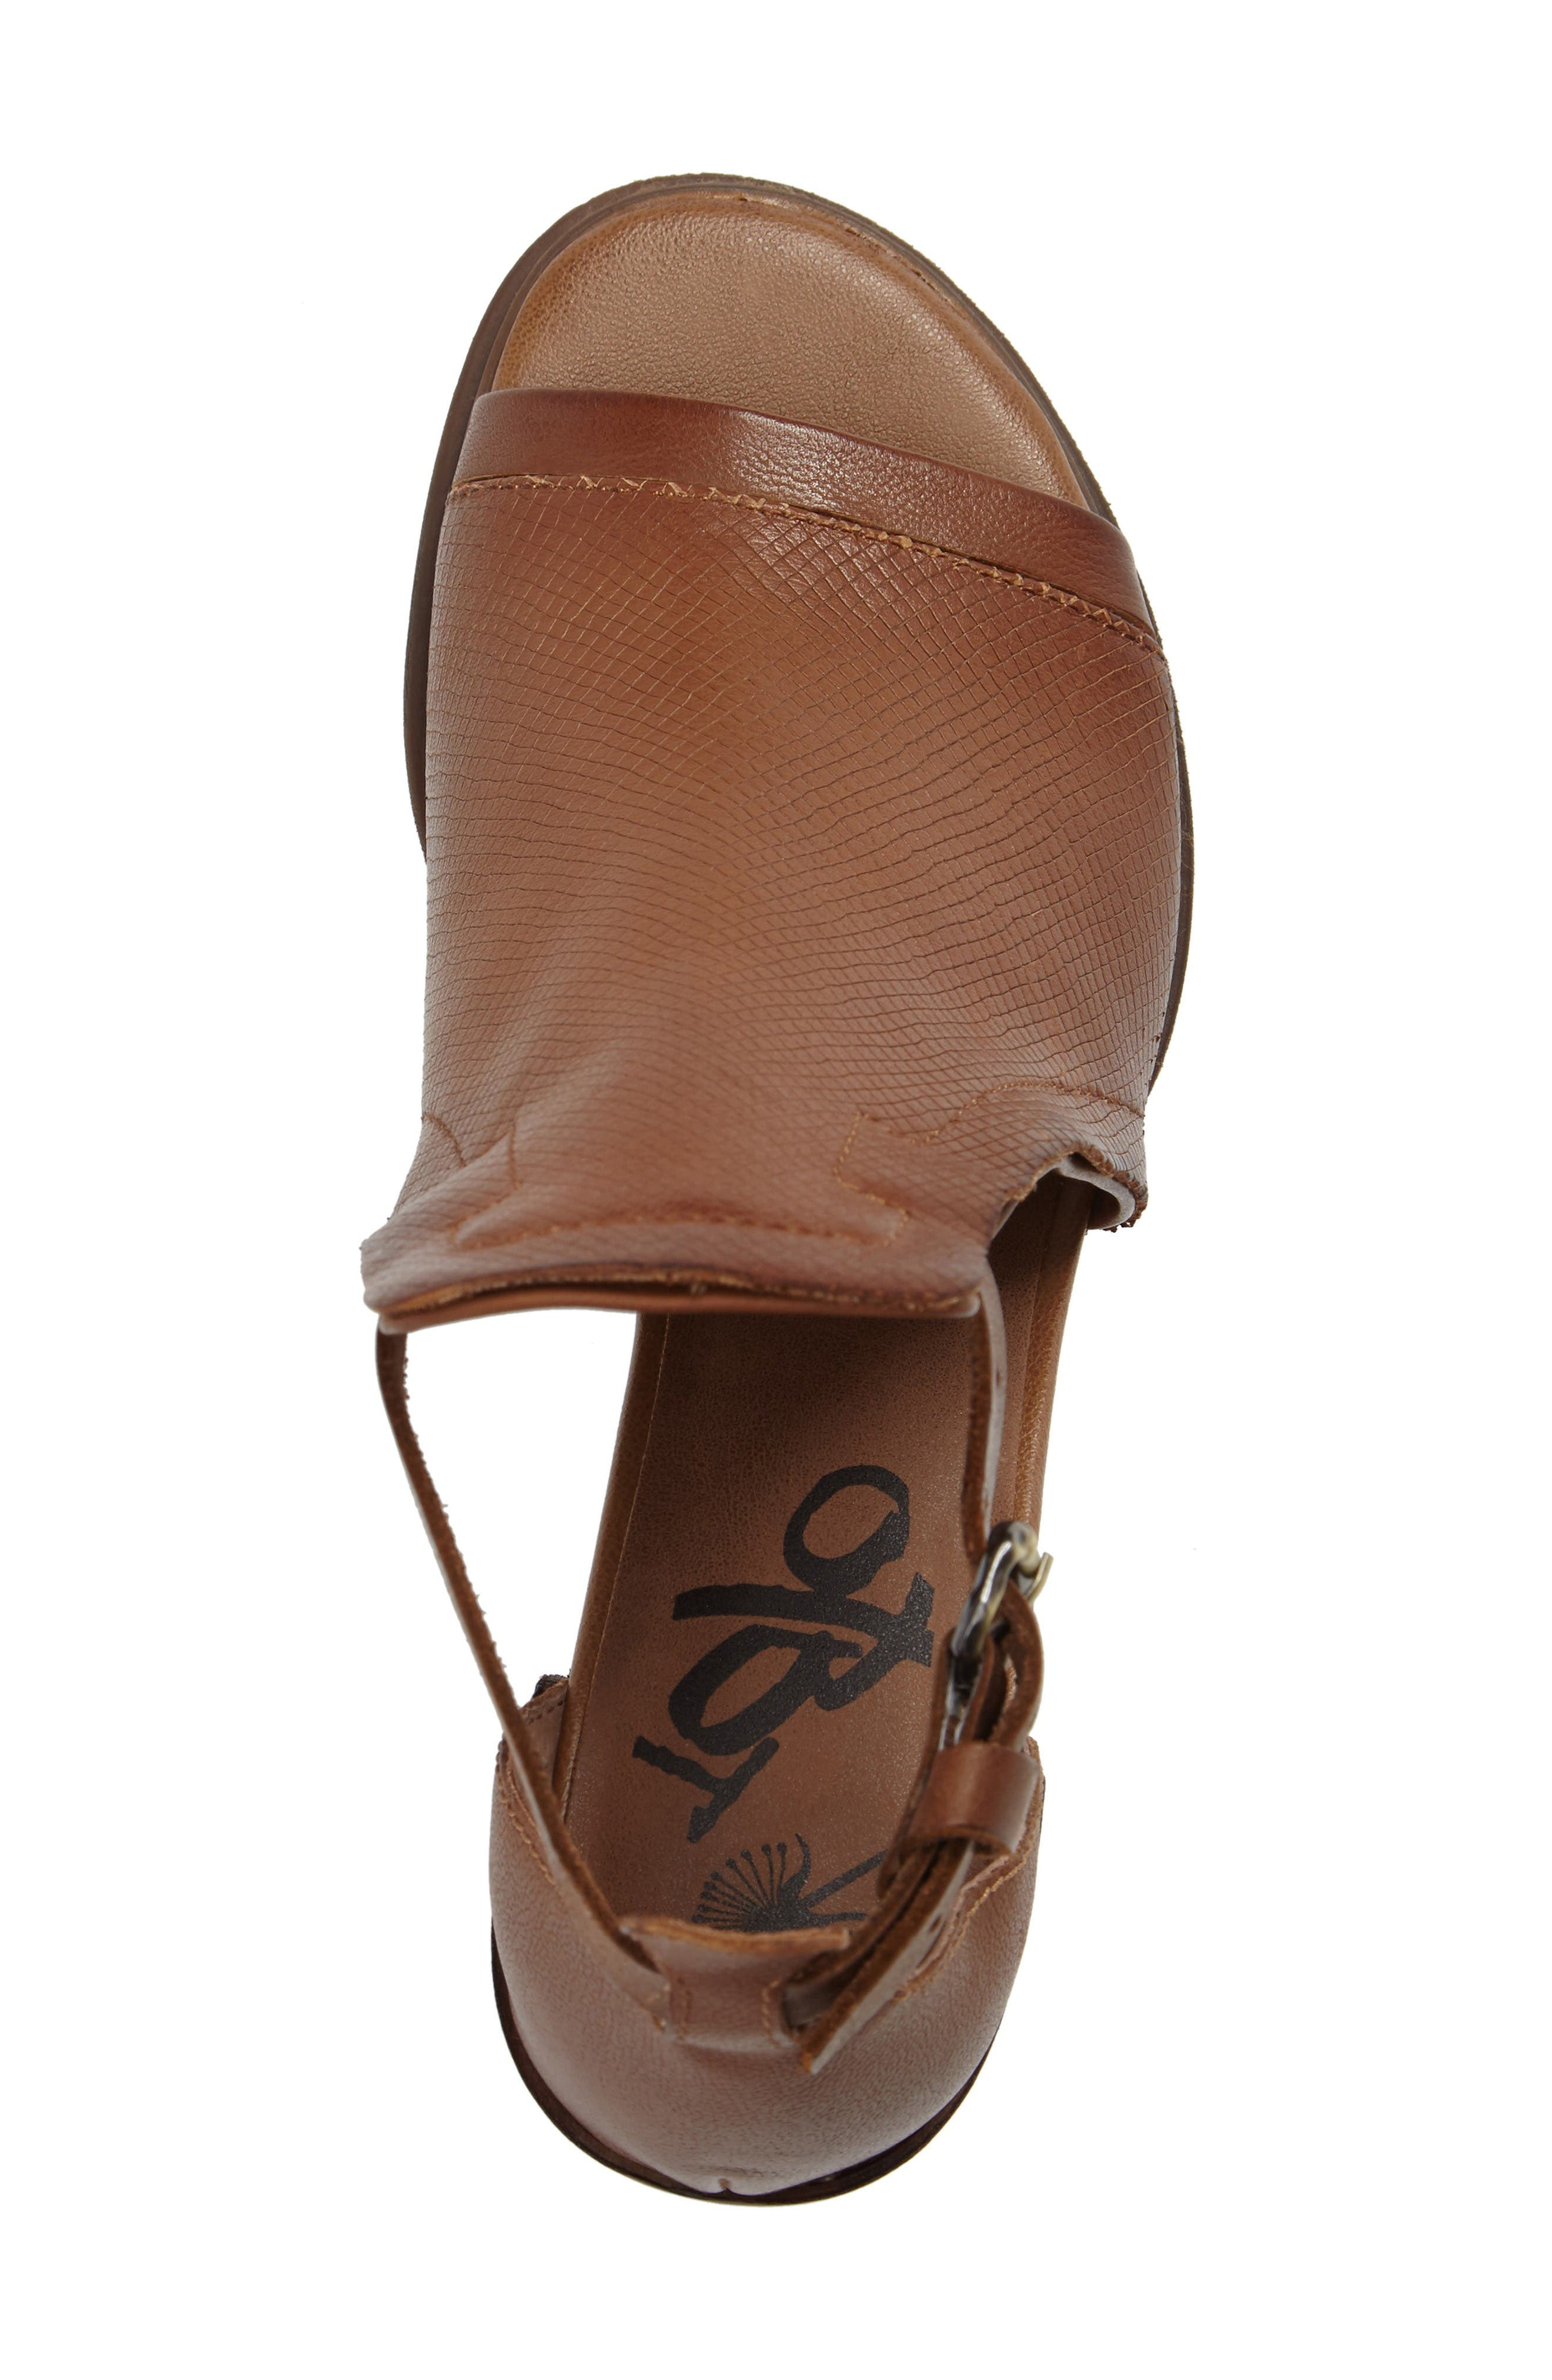 Metaphor Open Side Bootie,                             Alternate thumbnail 5, color,                             Medium Brown Leather